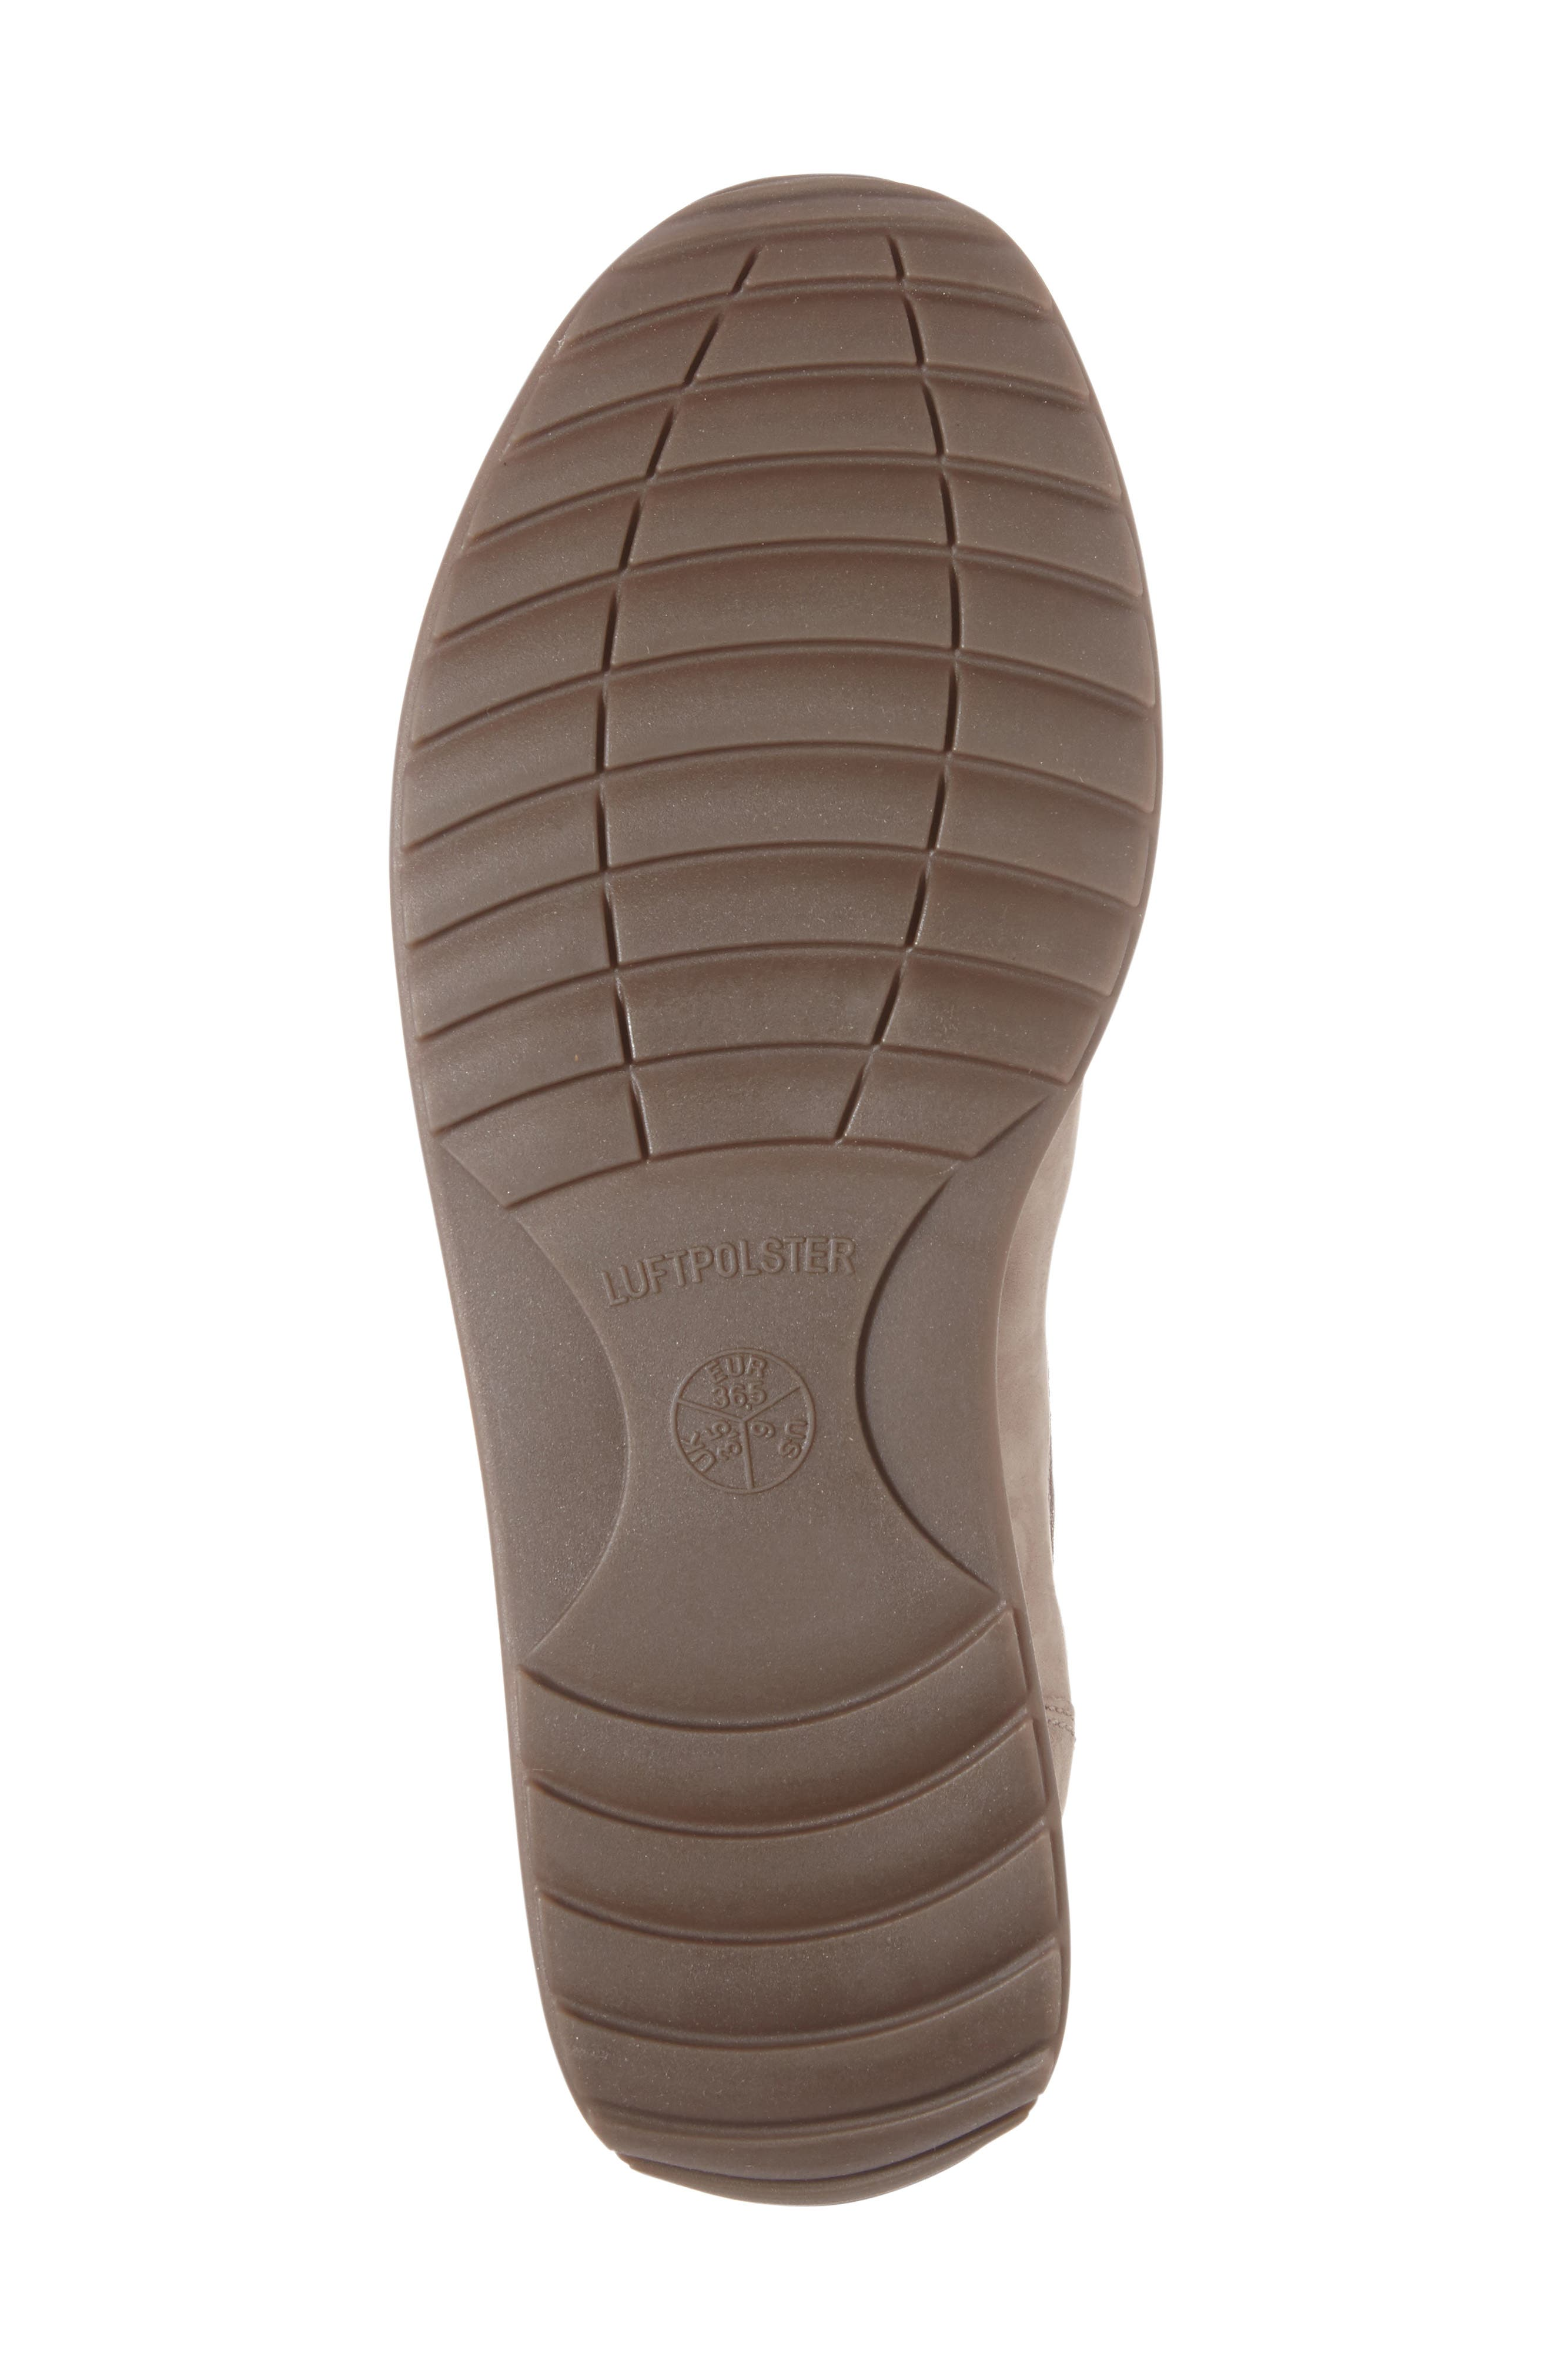 Hermione Sneaker,                             Alternate thumbnail 6, color,                             TAUPE COMBO LEATHER